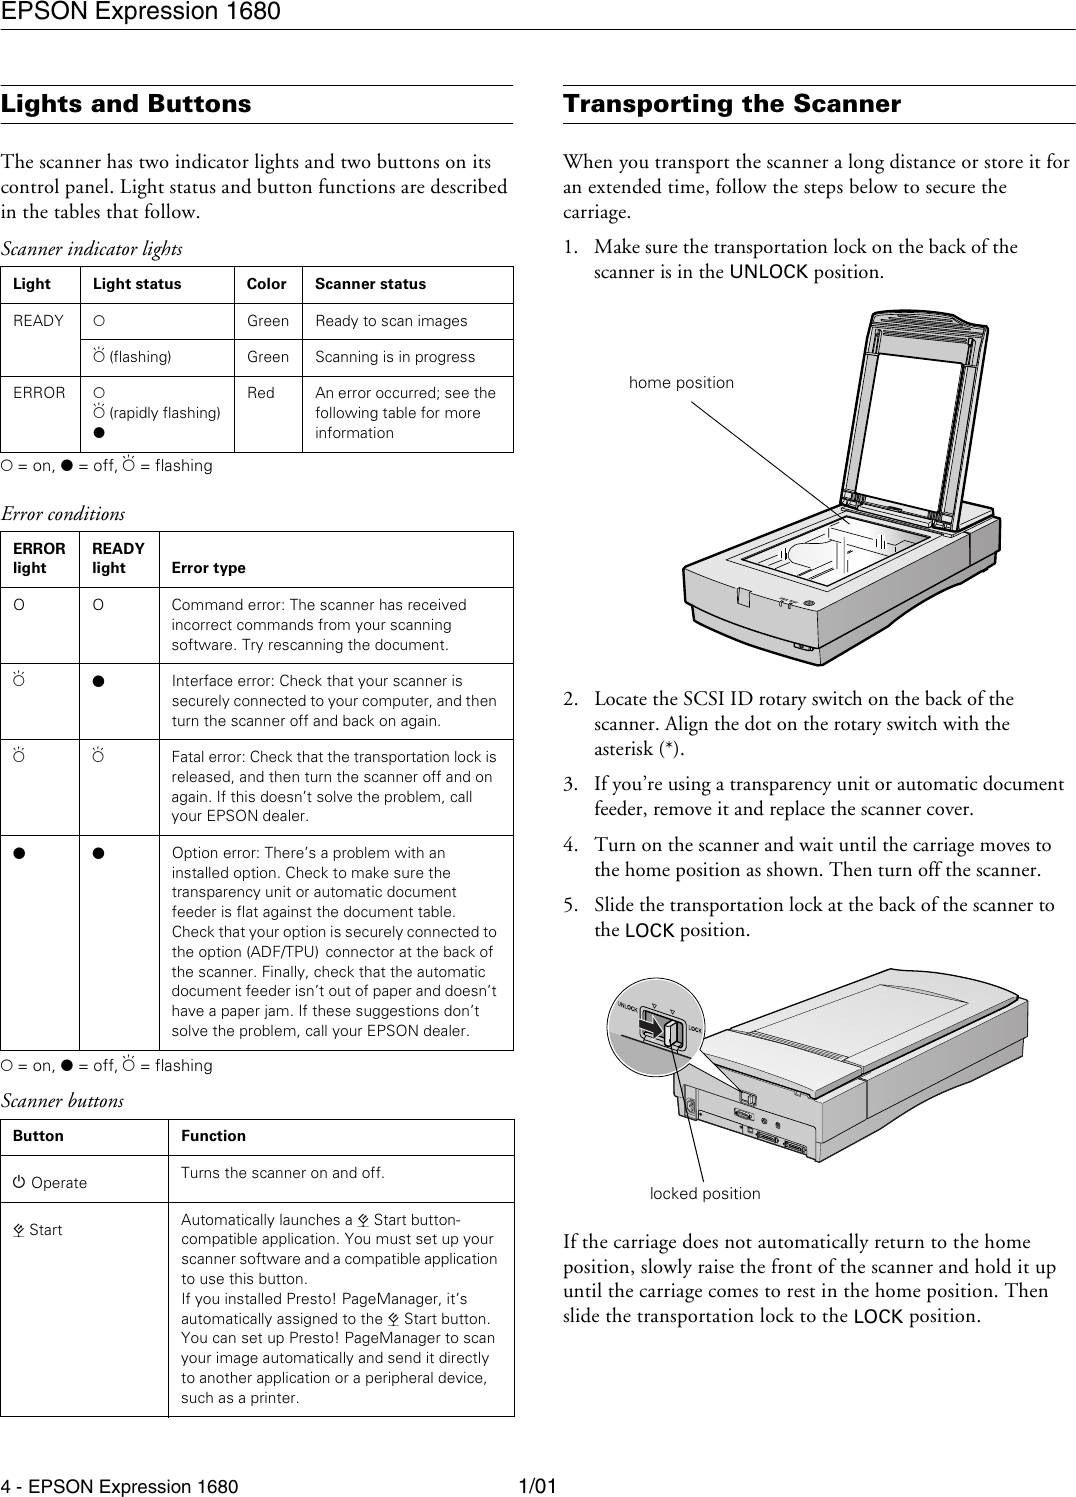 Epson Expression 1680 Professional Product Information Guide